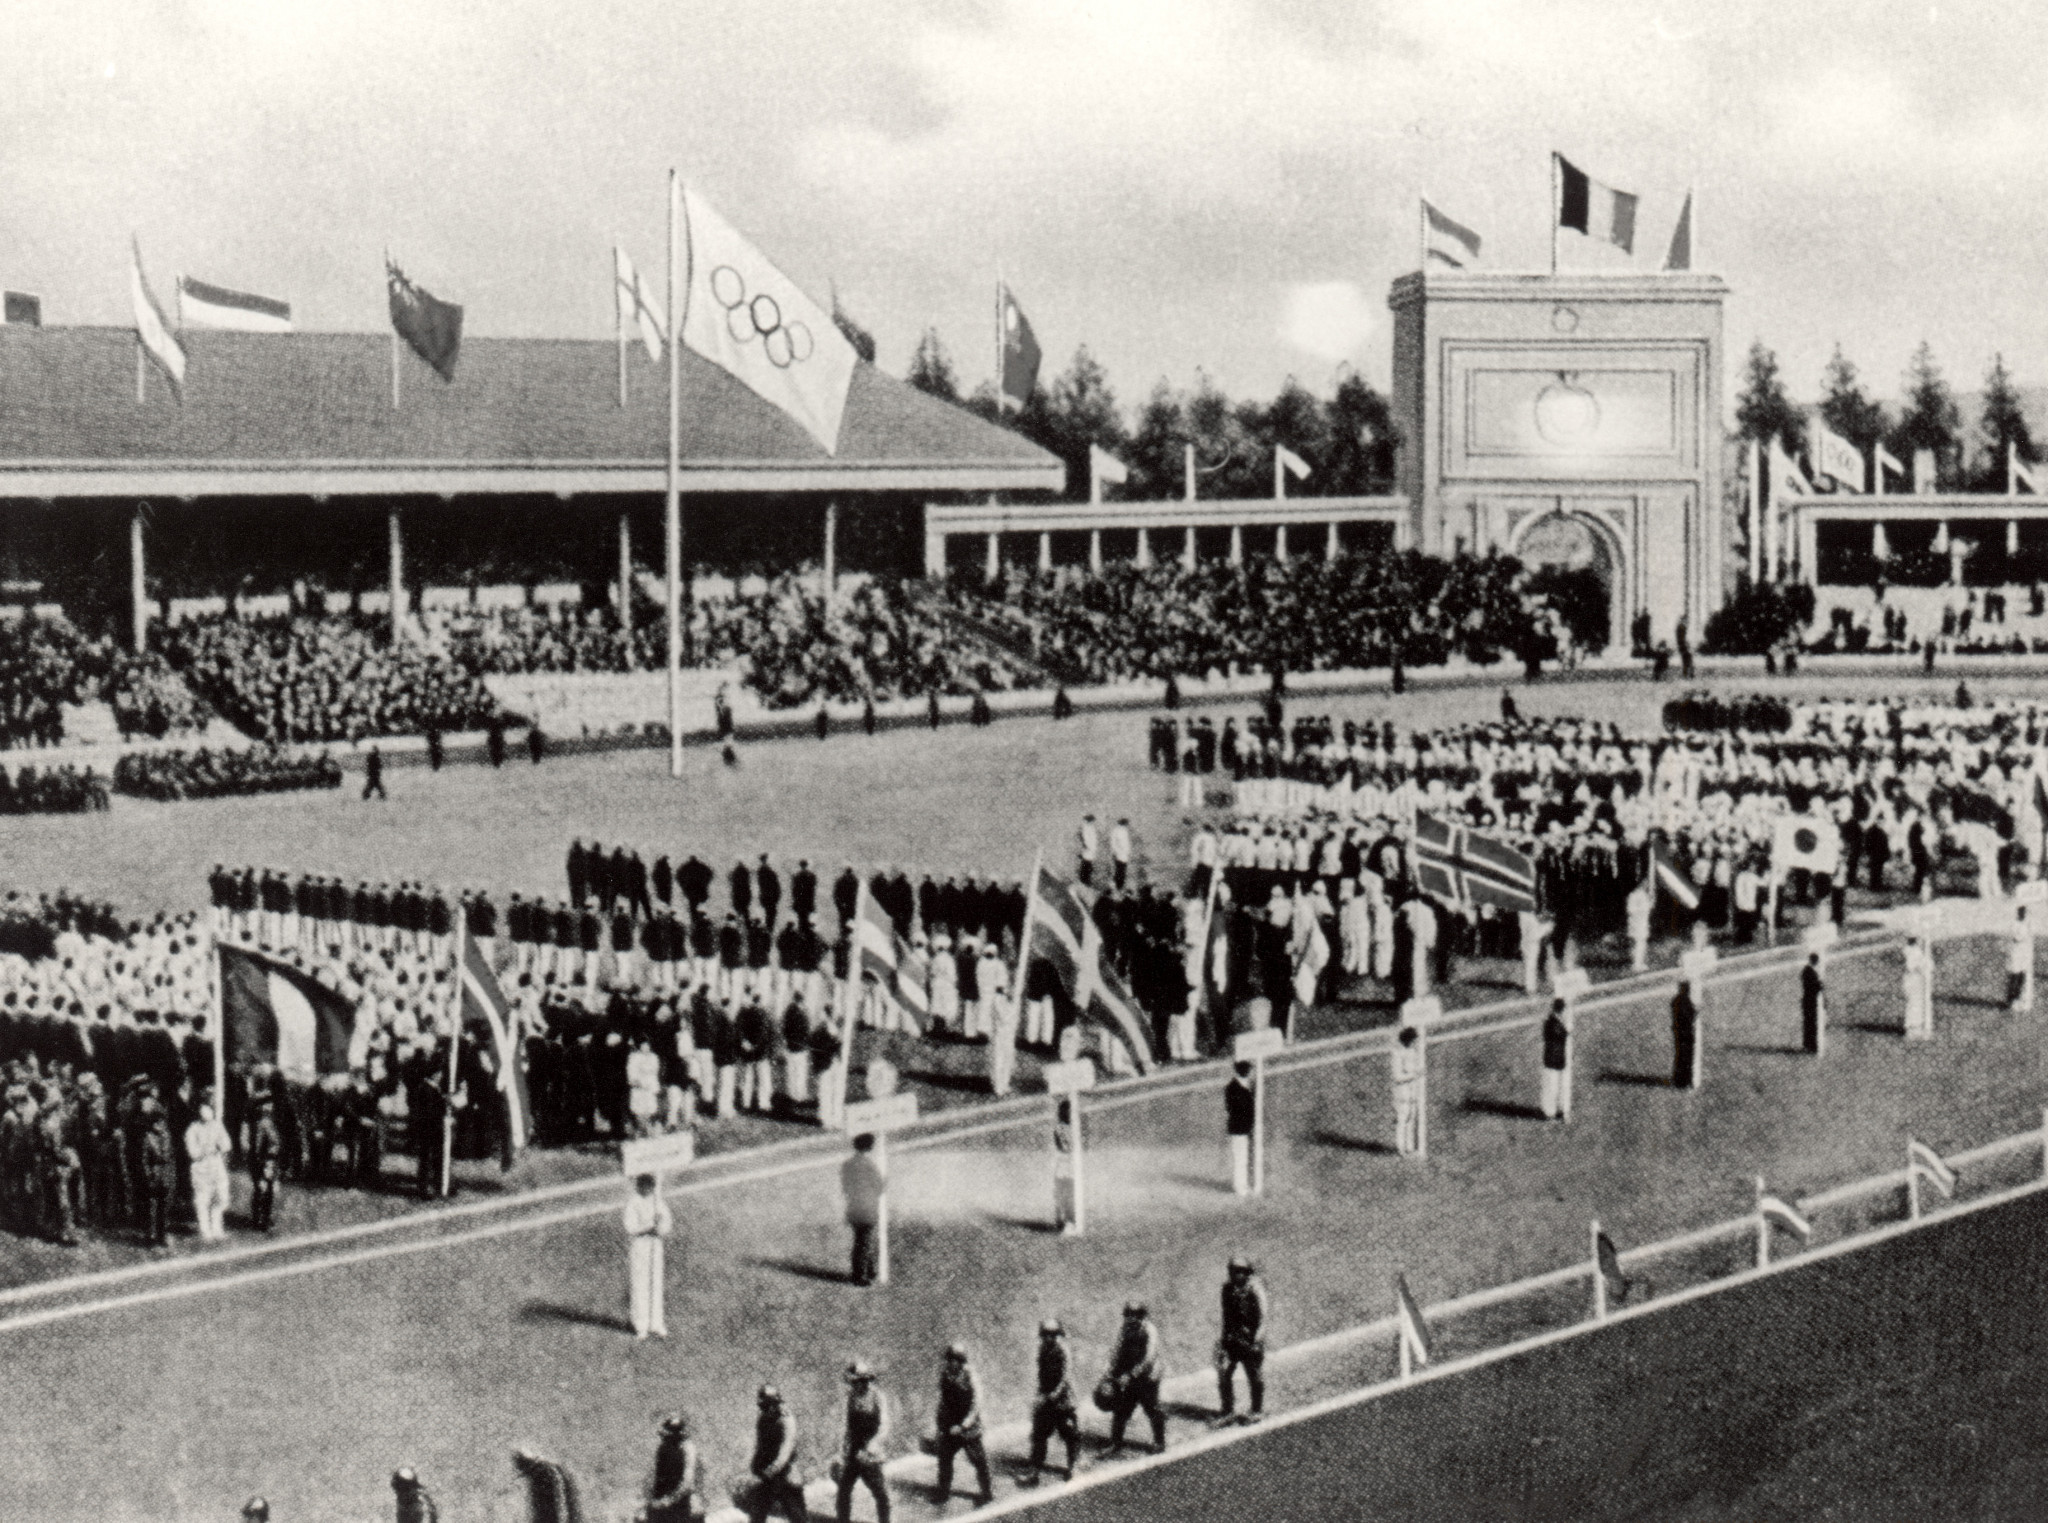 The Opening Ceremony of the Antwerp 1920 Games with the Olympic Rings featured for the first time ©Getty Images